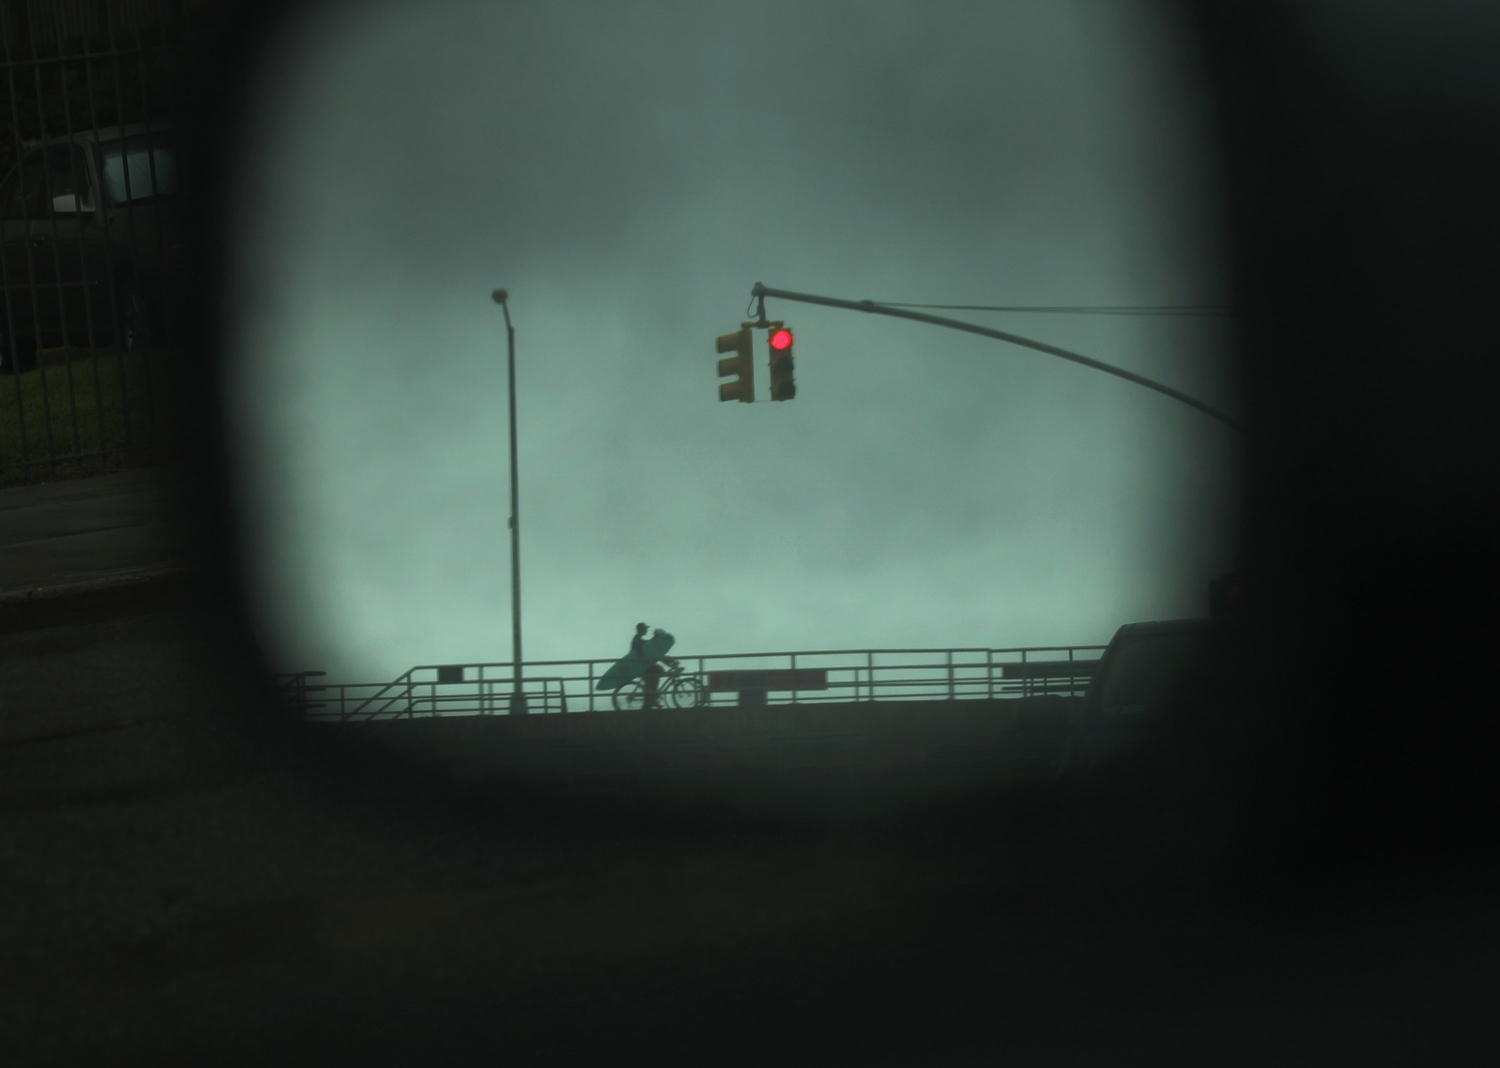 August 27, 2011, New York, NY. A surfer is viewed on his bike through a car mirror in the Rockaways before the arrival of Hurricane Irene. The Rockaways were under mandatory evacuation orders.